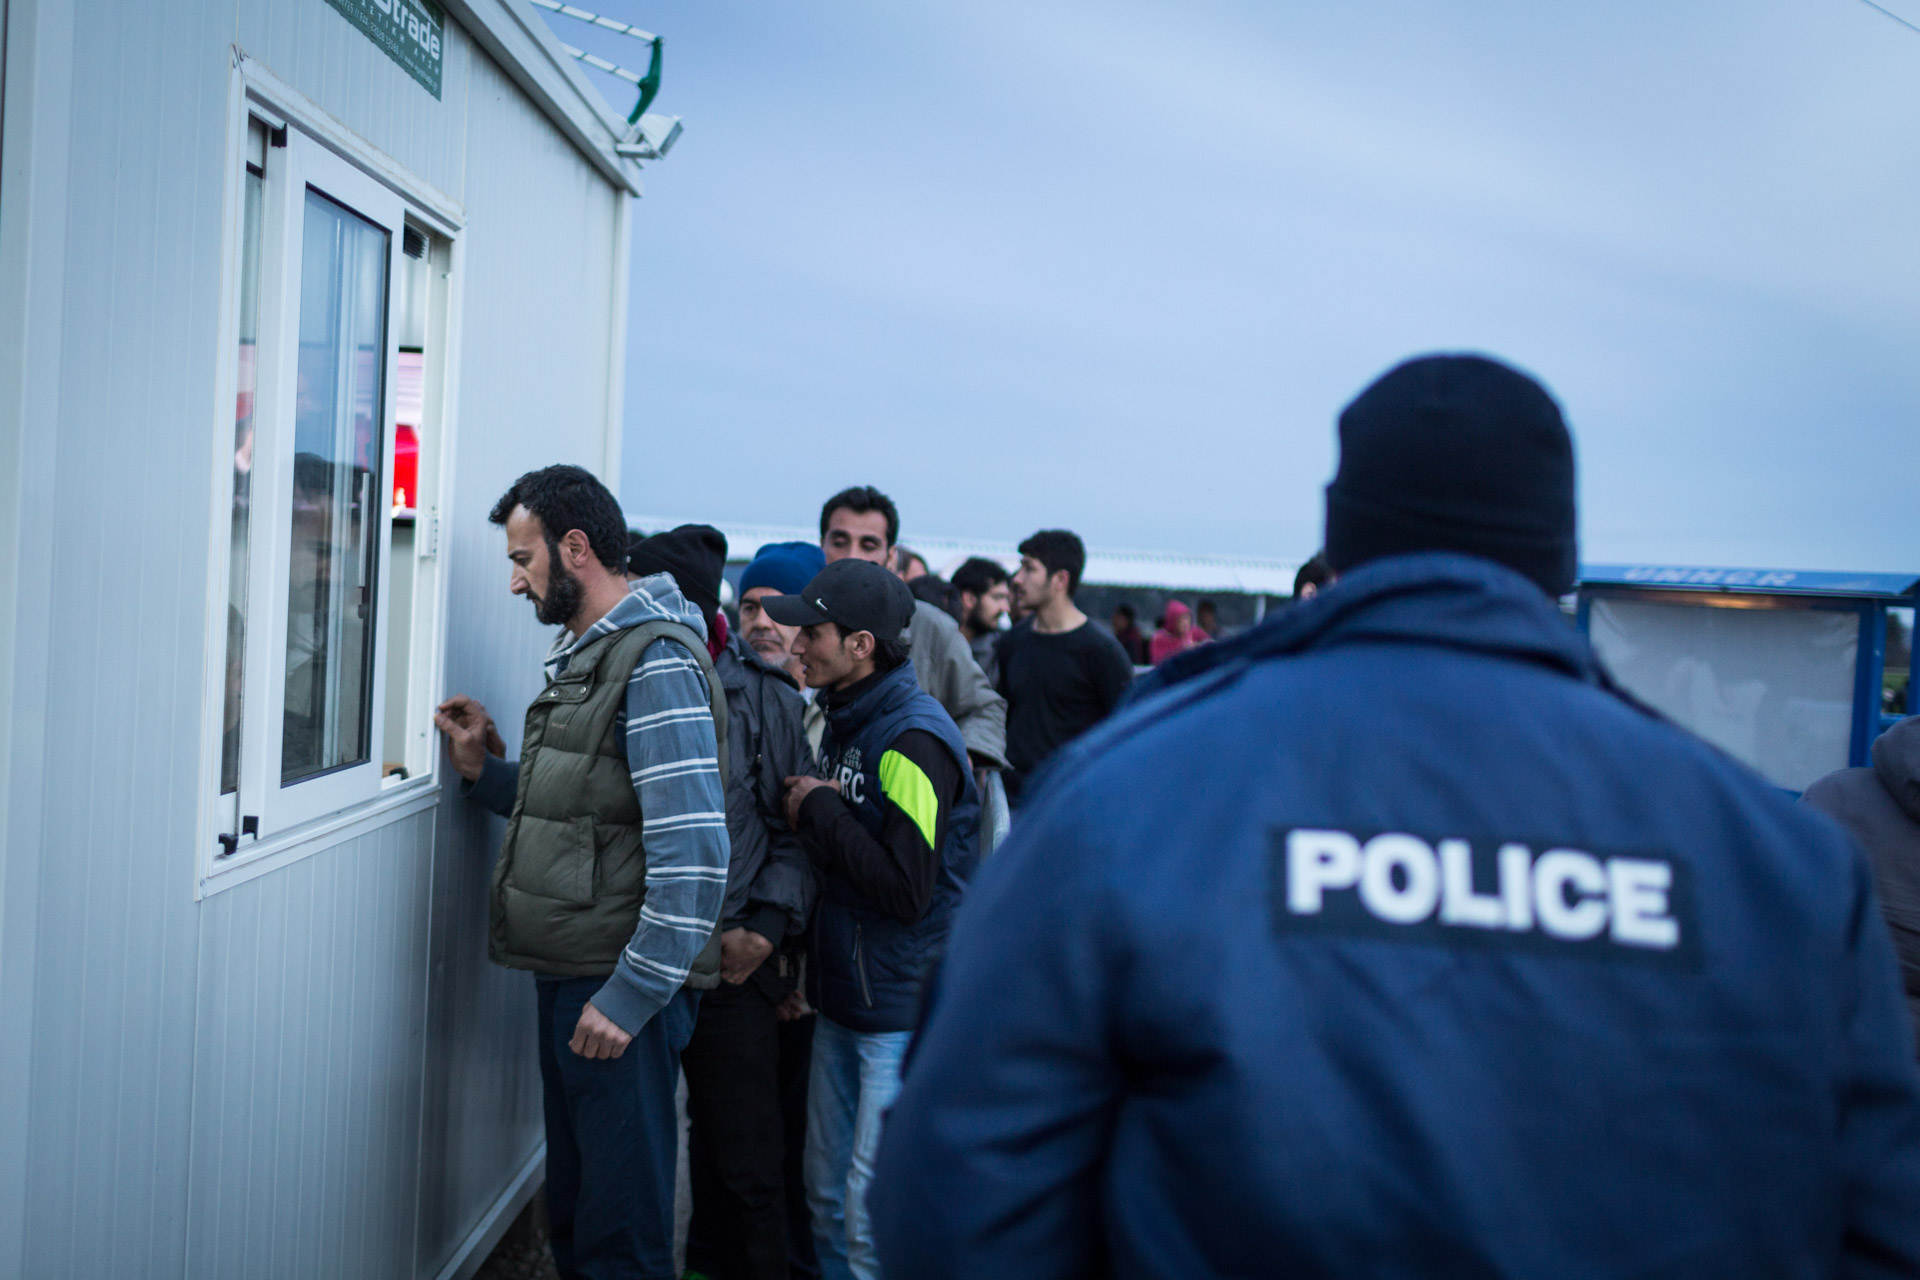 Basem stands in line to get his papers stamped by Greek police in order to get a waiting number. This number will indicate how long his family has to wait to cross the border.